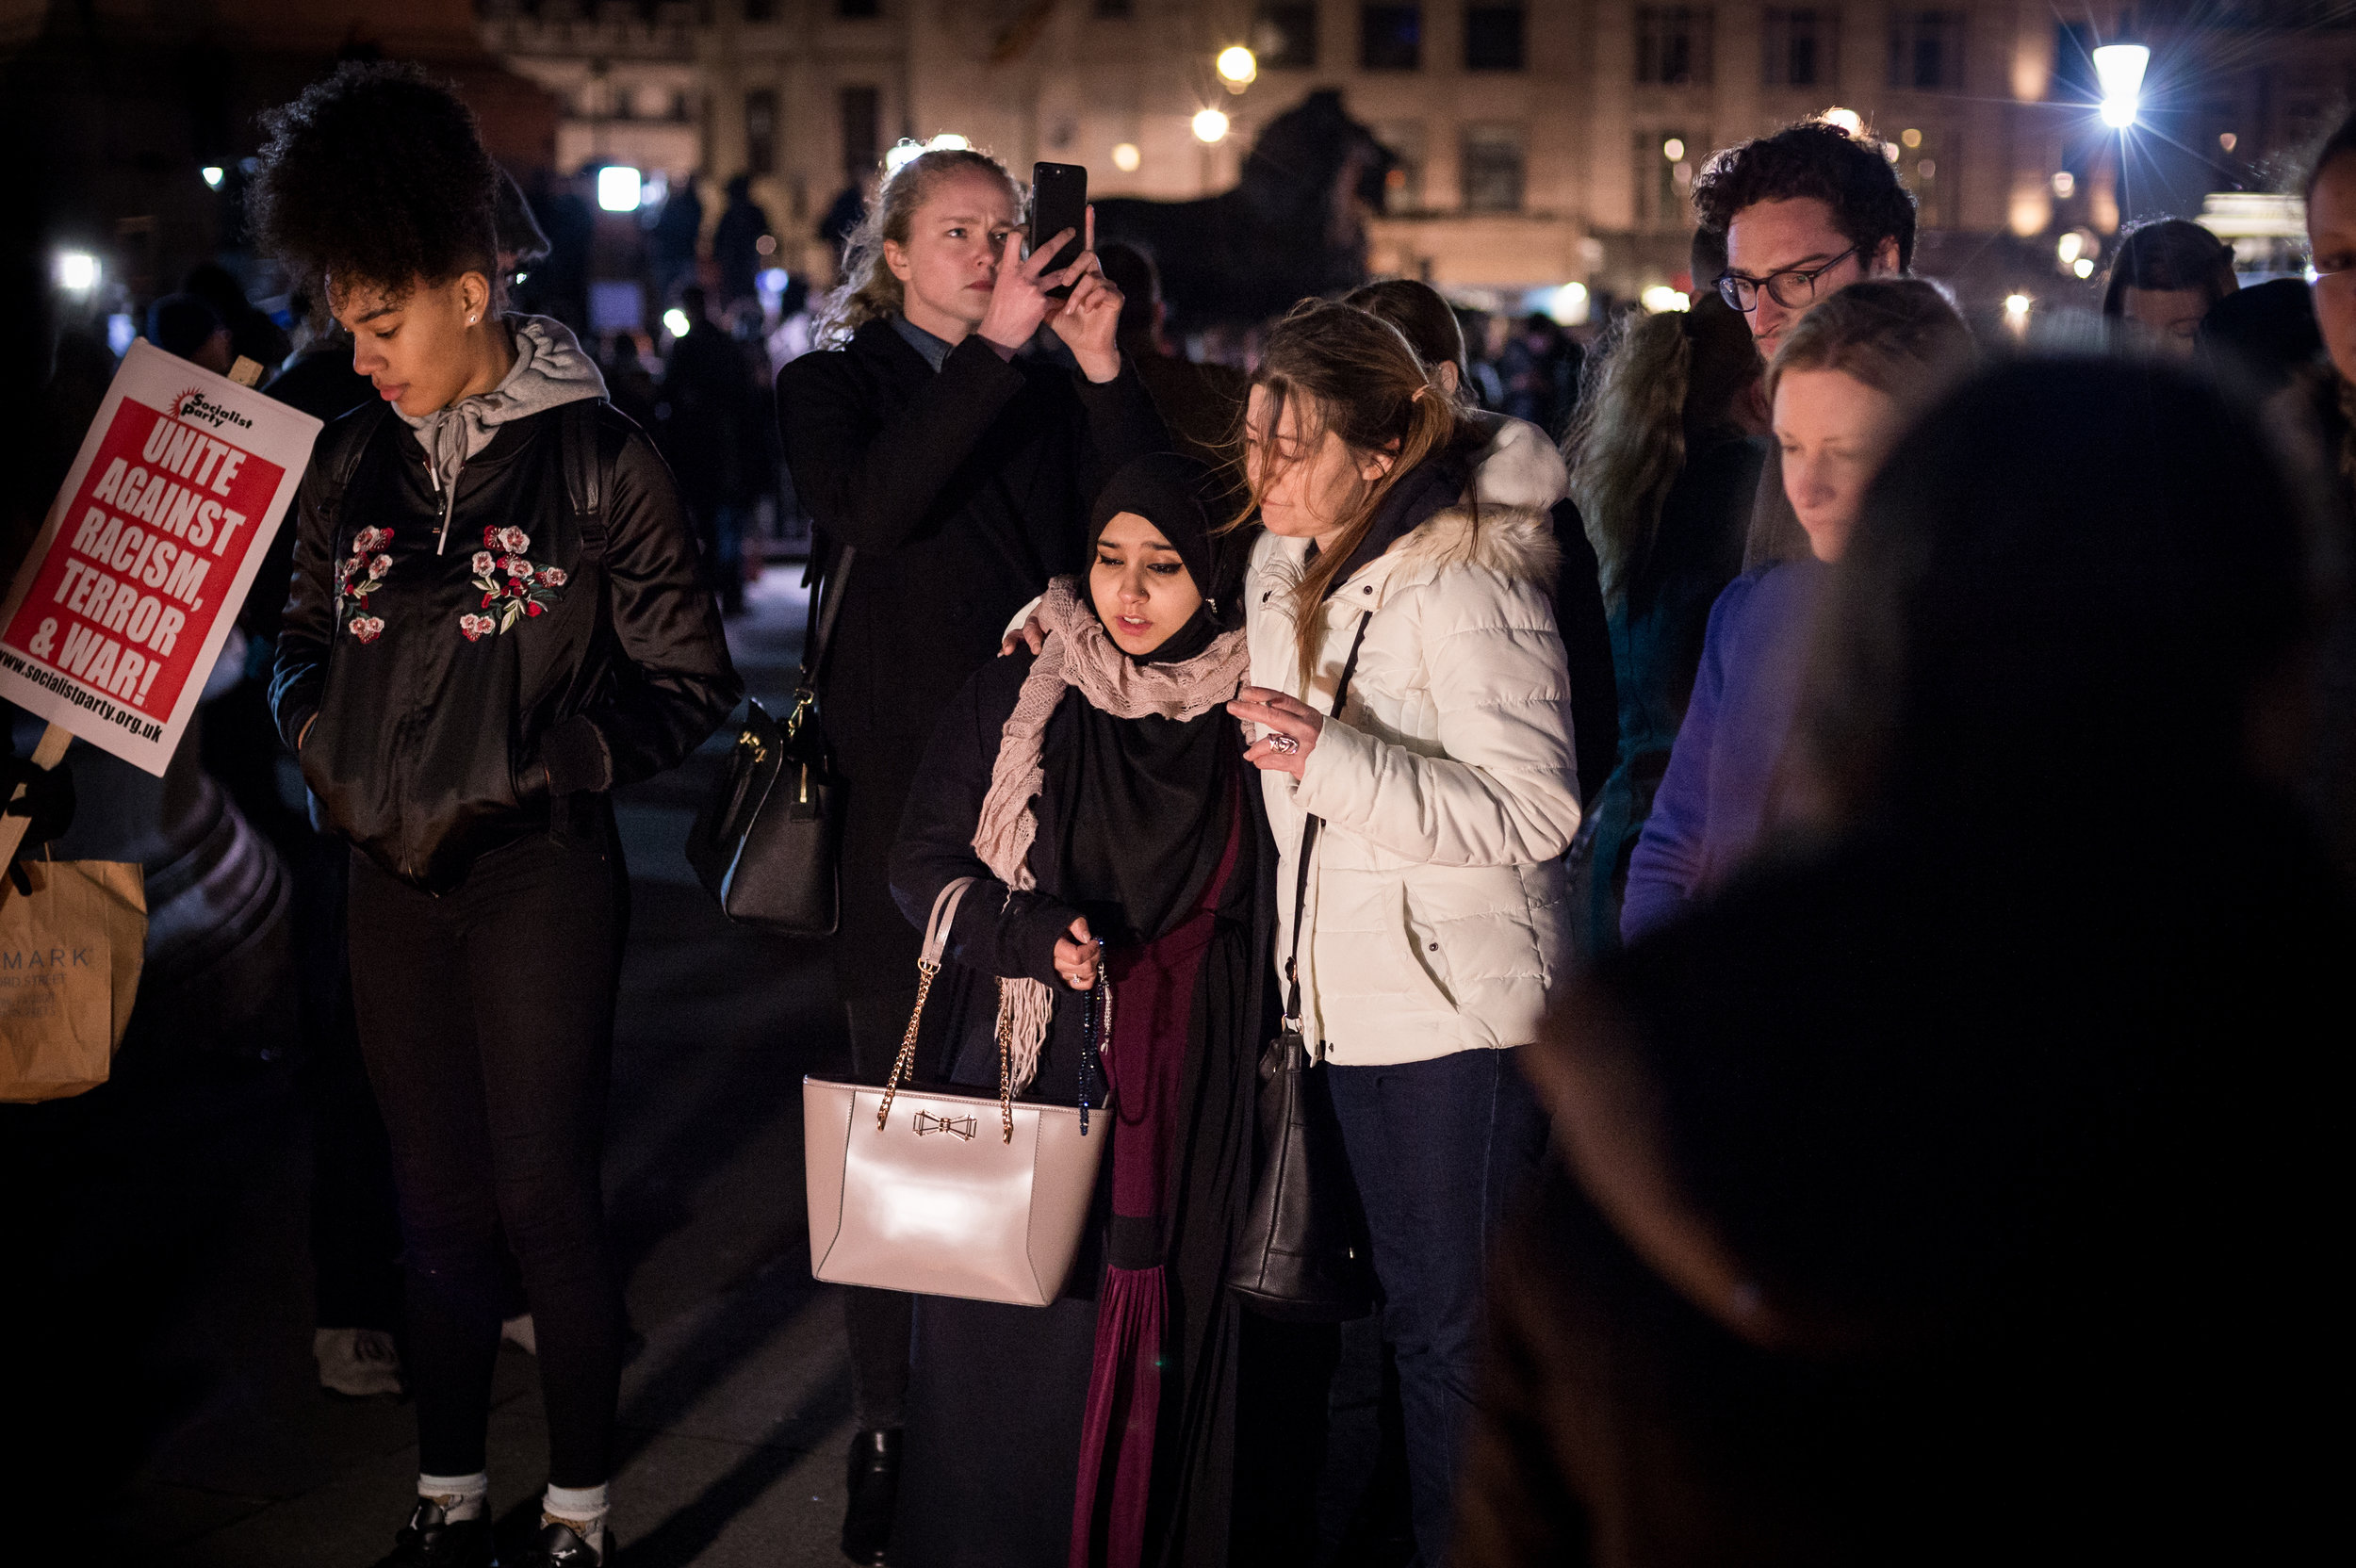 A visibly distressed Muslim woman is comforted by a friend.